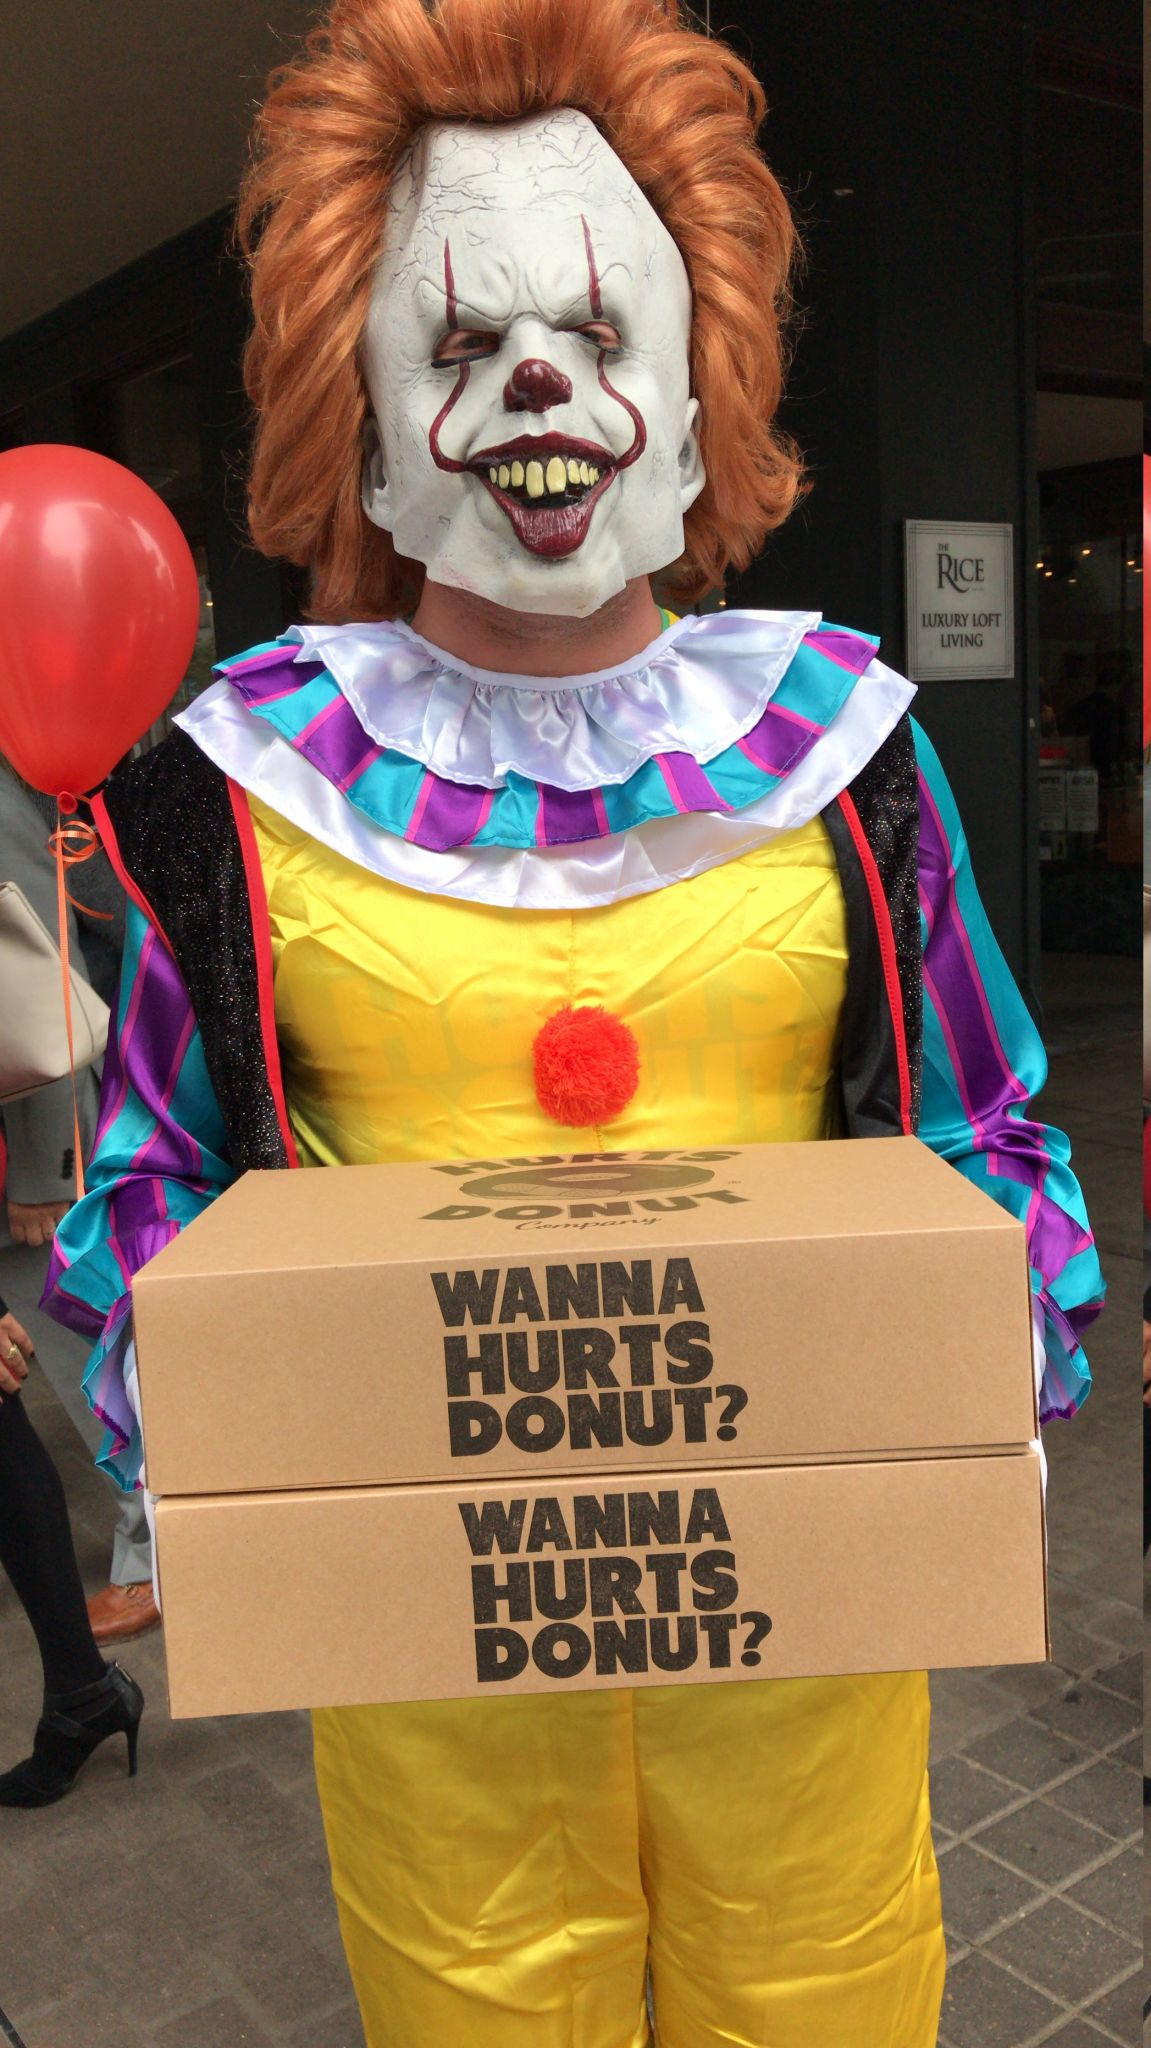 houstonians freak out as scary clowns make unexpected doughnut